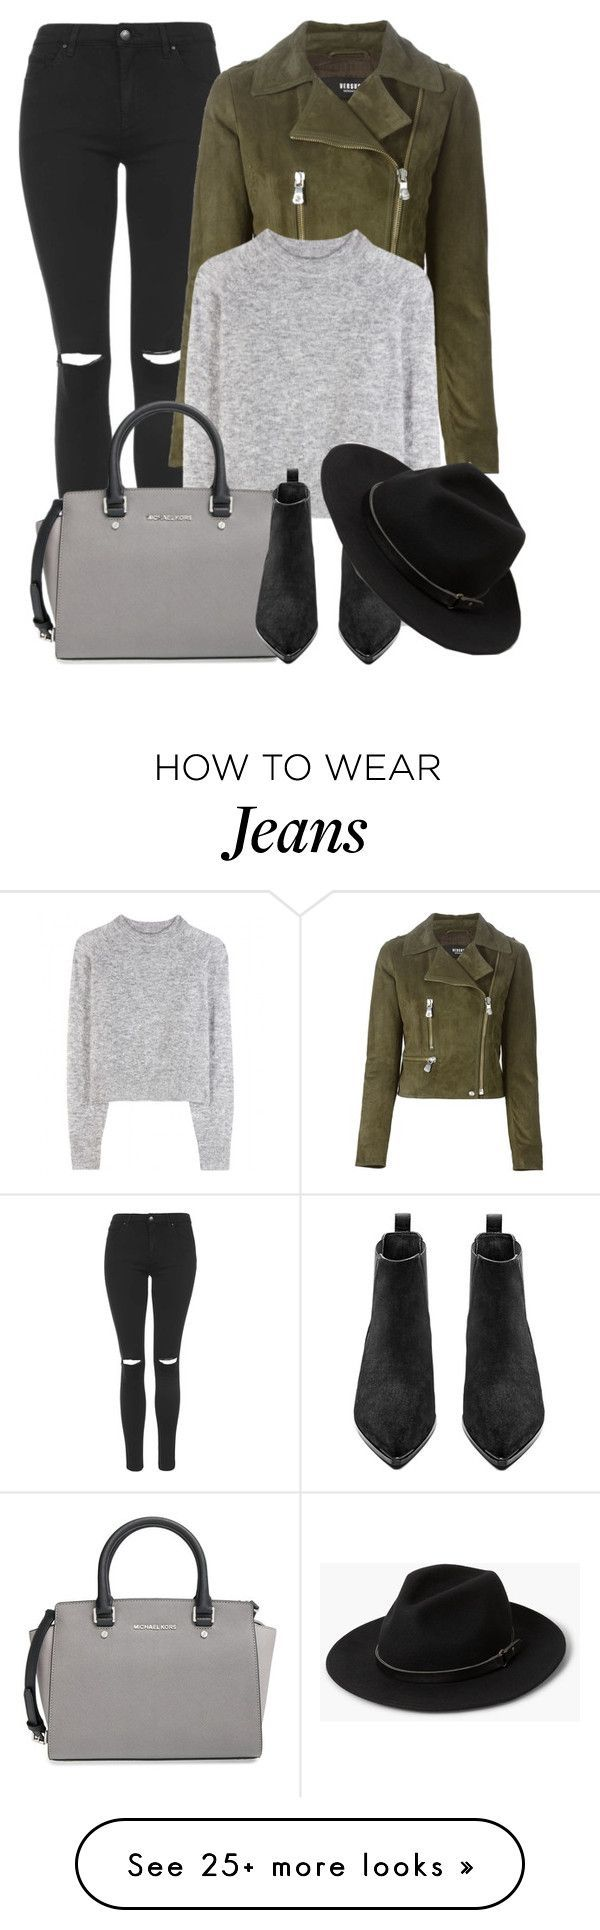 """""""What I'd Wear"""" by monmondefou on Polyvore featuring Topshop, Versus, Wood Wood, MICHAEL Michael Kors, Acne Studios, MANGO, Fall, black, GREEN and gray"""